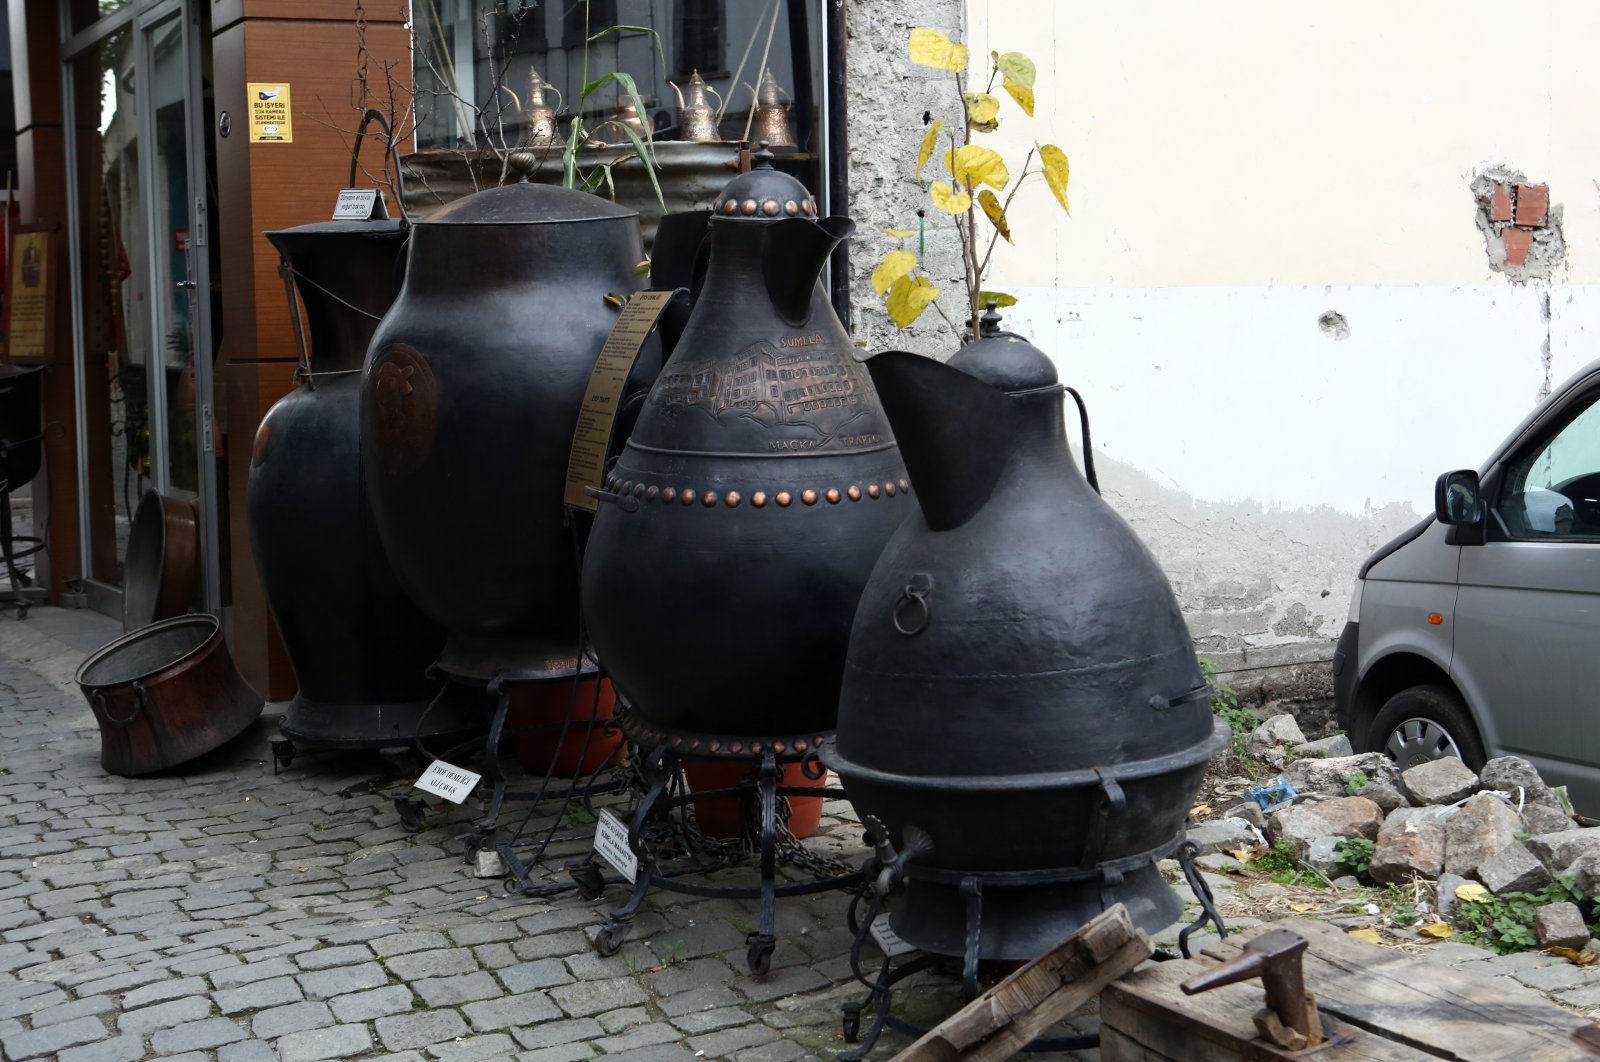 Giant copperware by Ali Çavuş is displayed in front of his workshop in Trabzon, northern Turkey, Dec. 24, 2020. (AA PHOTO)